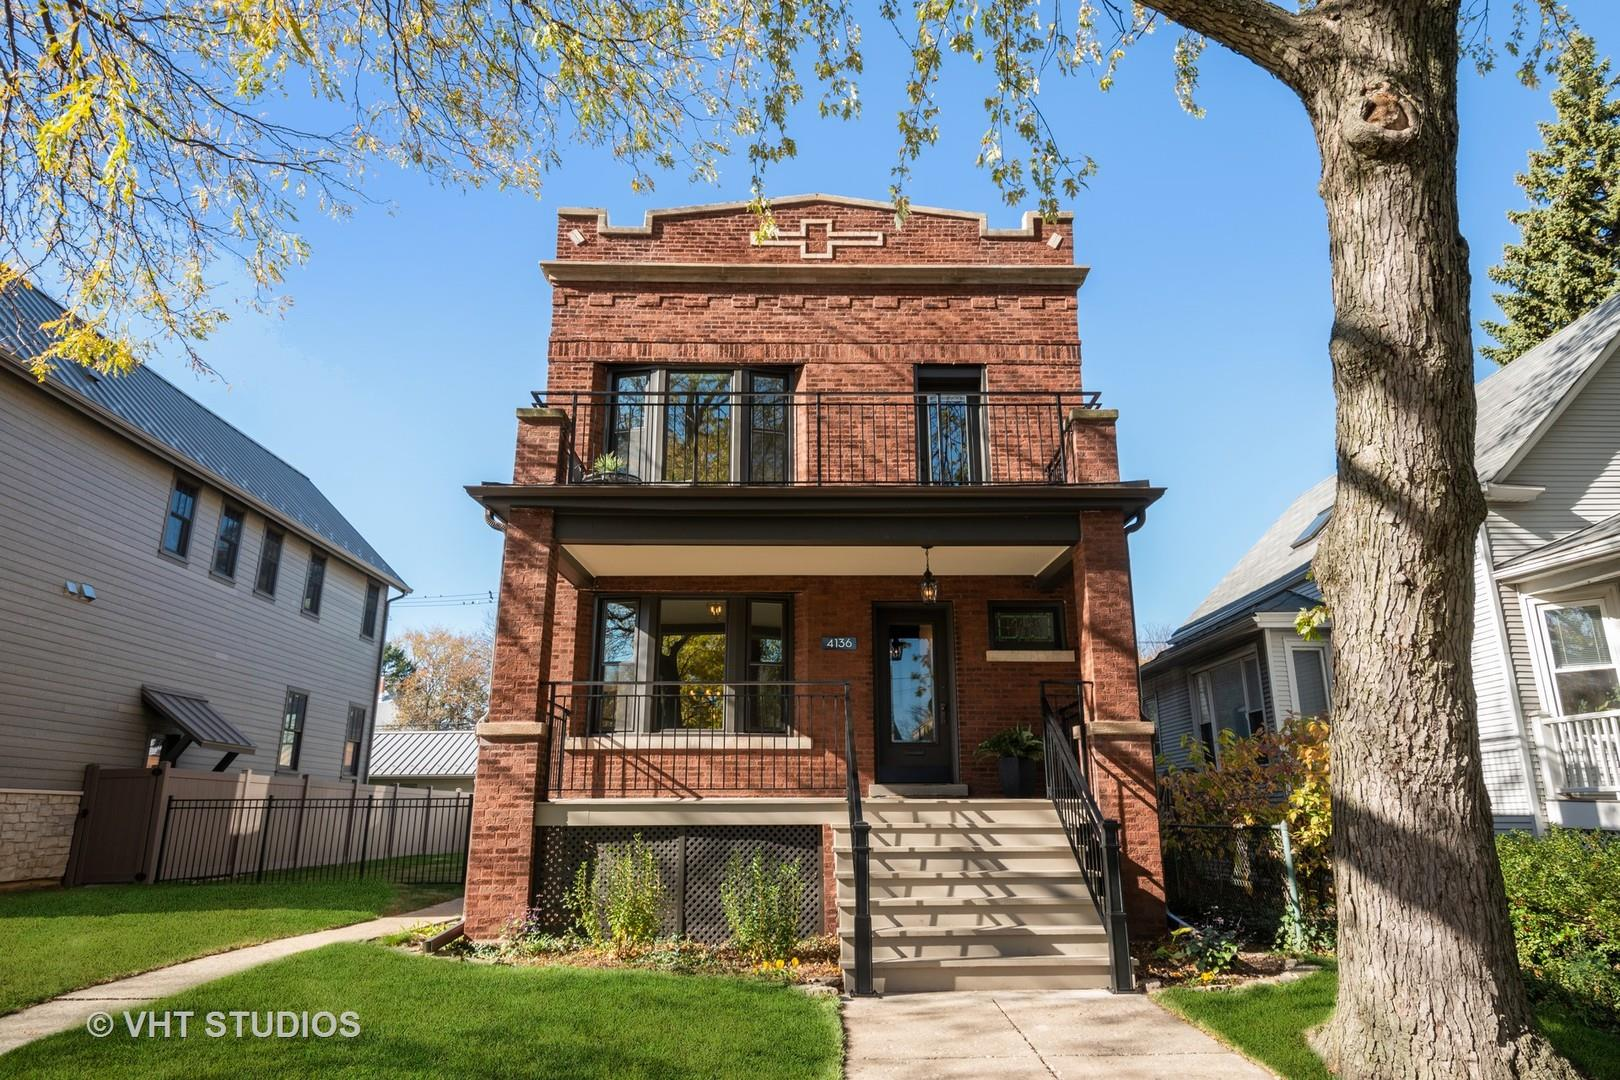 4136 N Kenneth Avenue, Chicago, IL 60641 - #: 10967072